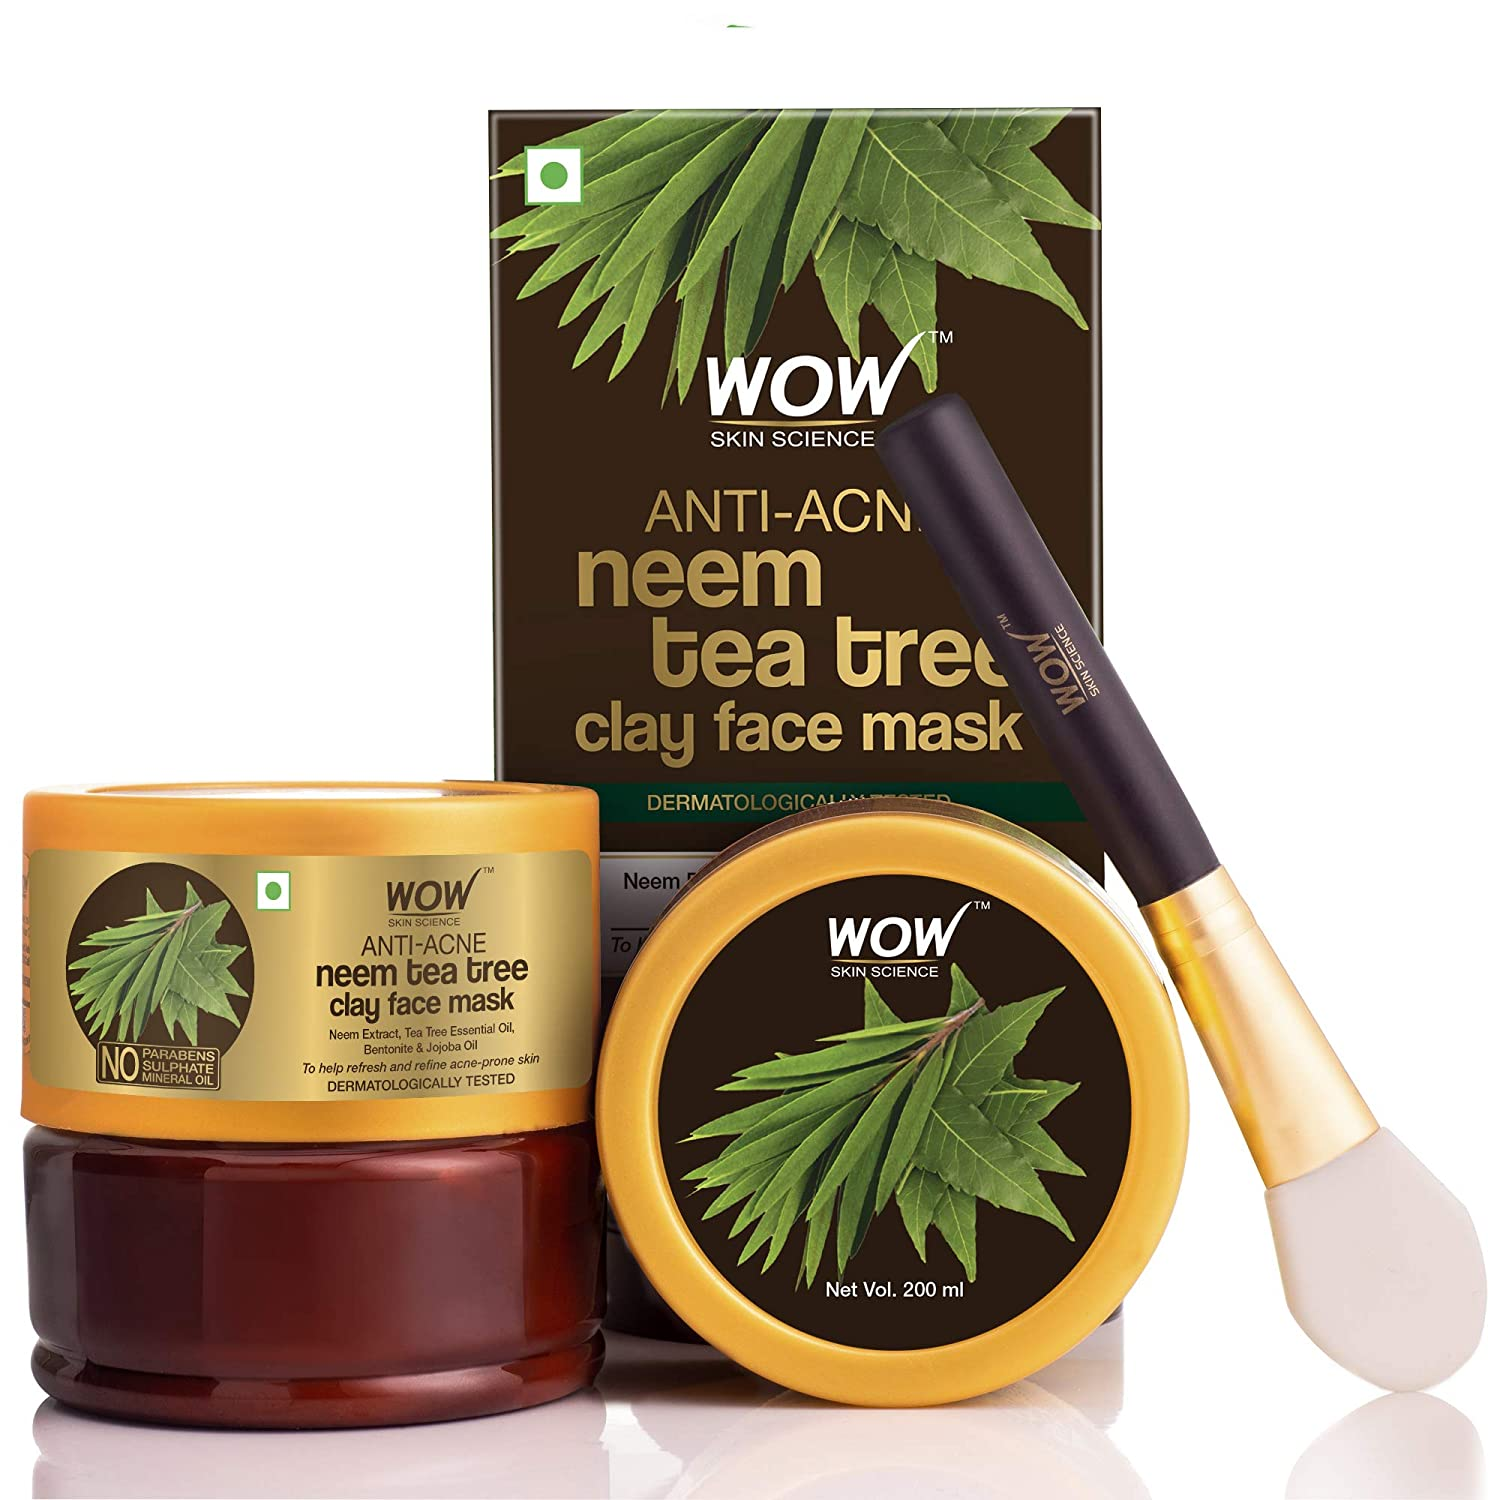 WOW Skin Science Anti-Acne Neem beauty product